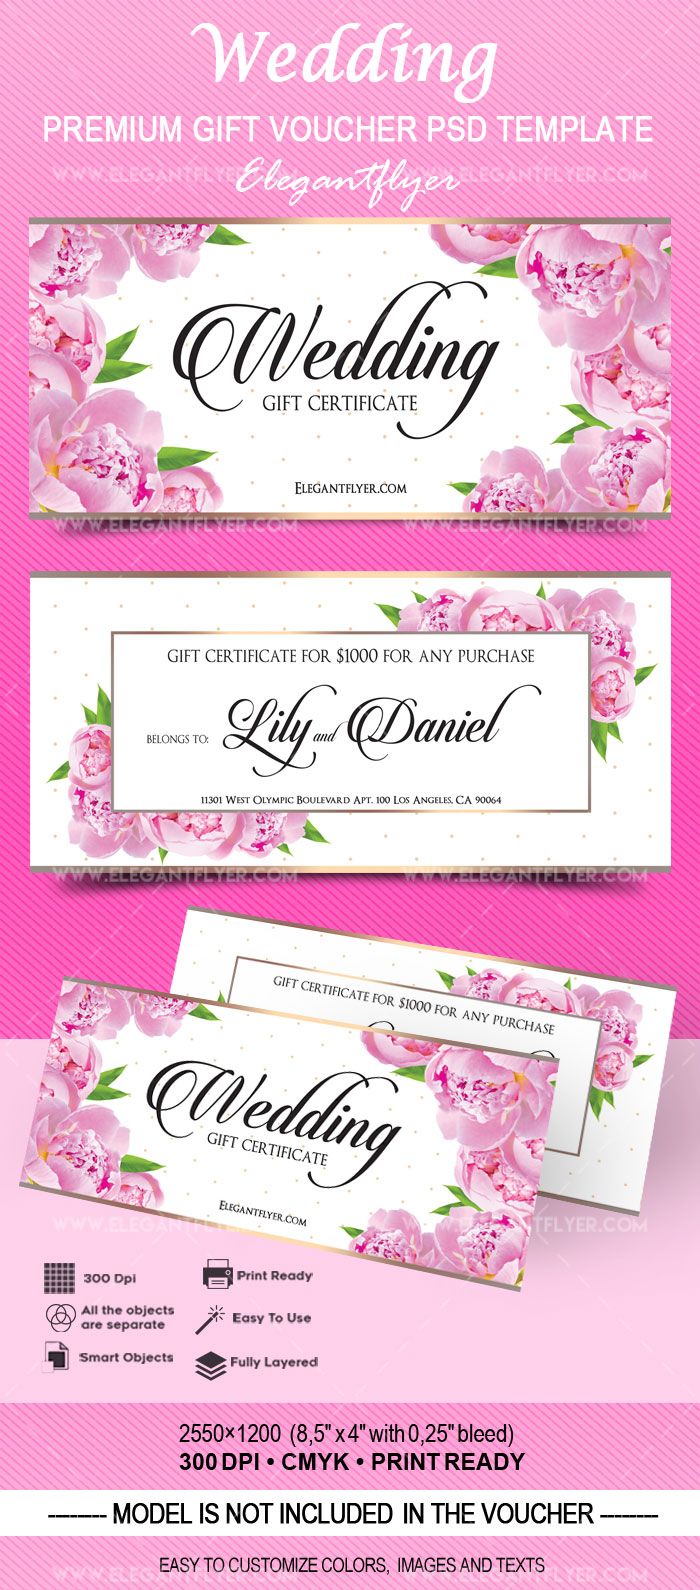 Wedding Premium Gift Certificate Psd Template By Elegantflyer